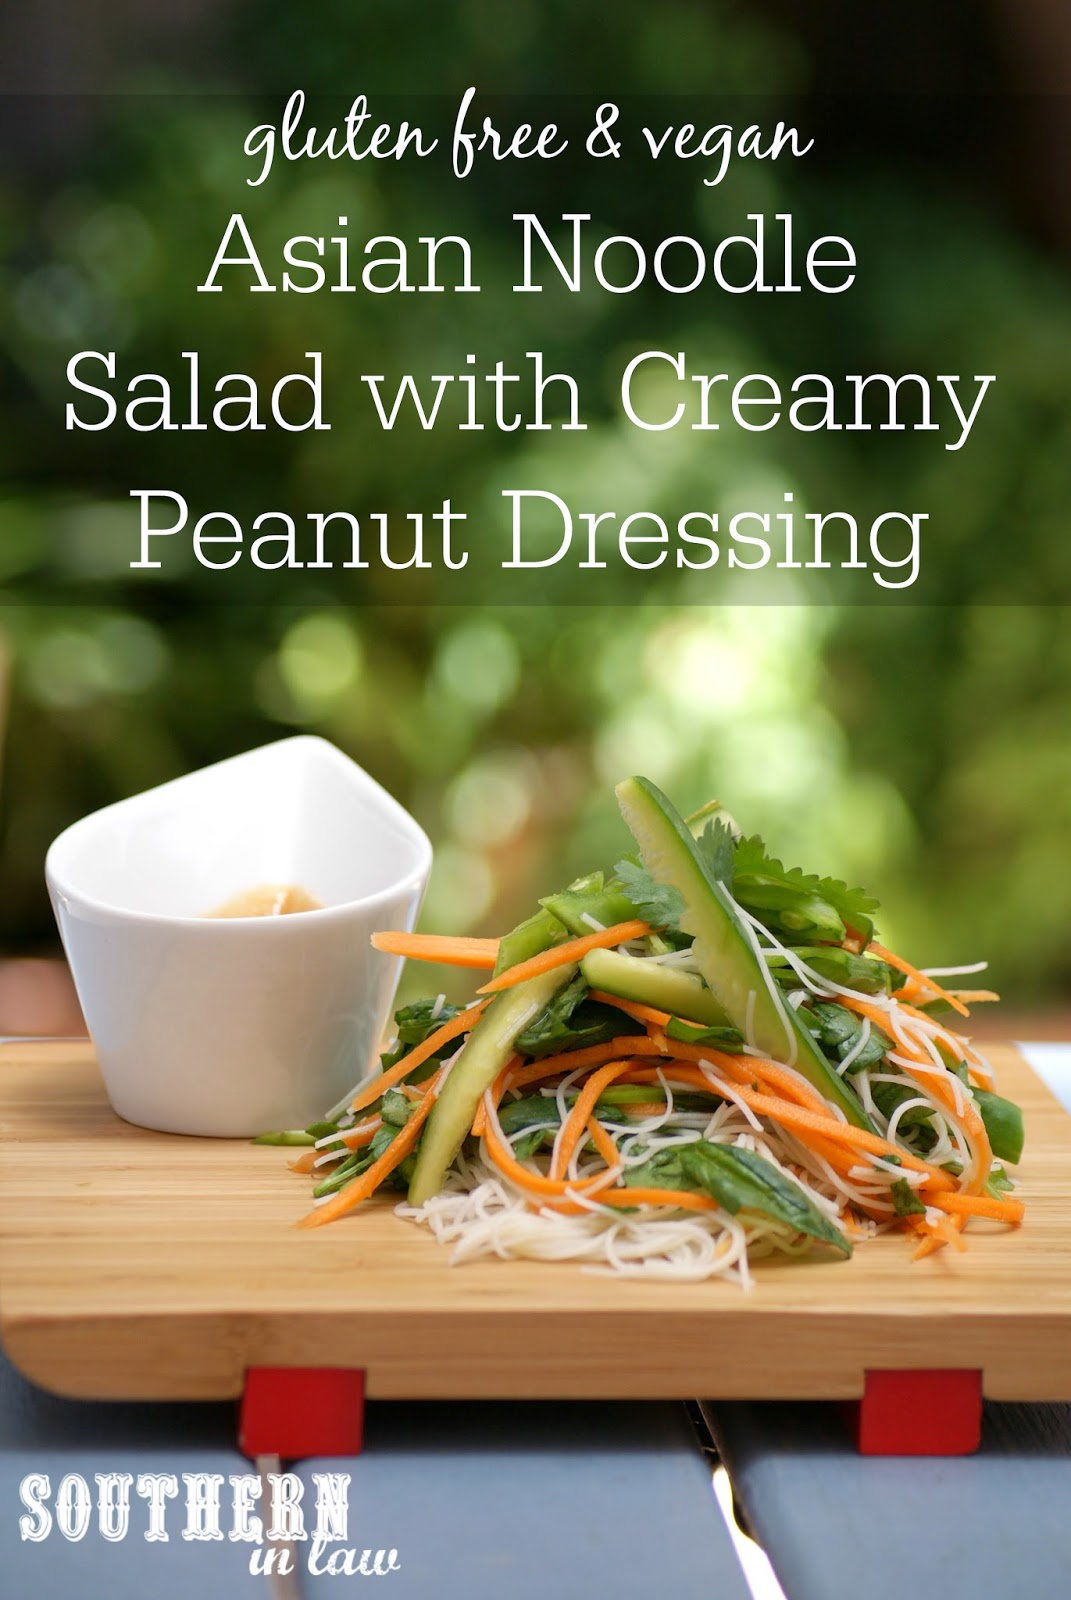 Asian Noodle Salad with Creamy Peanut Dressing Recipe - low fat, gluten  free, clean